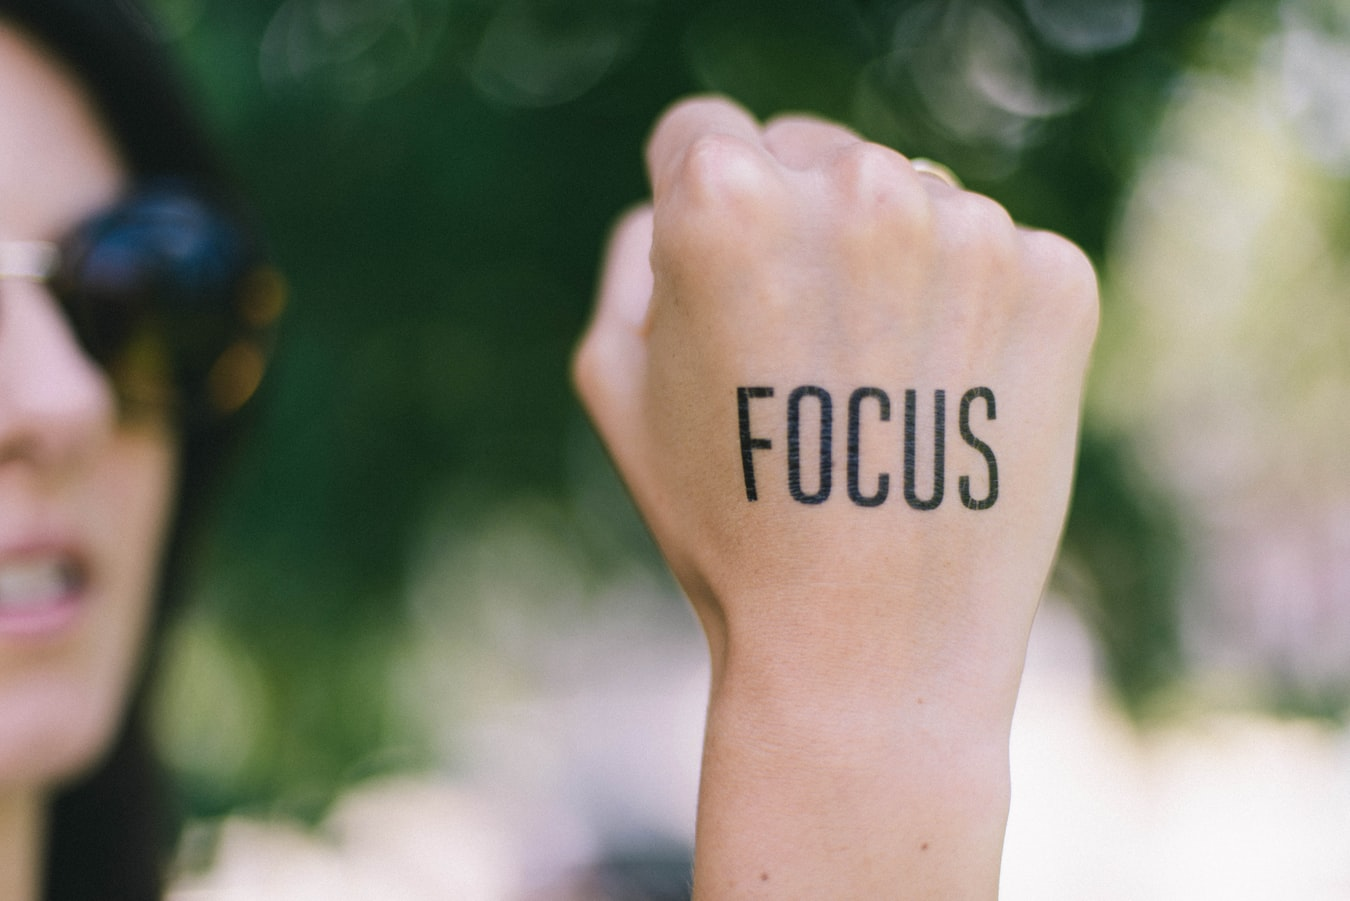 Ways to Improve your focus